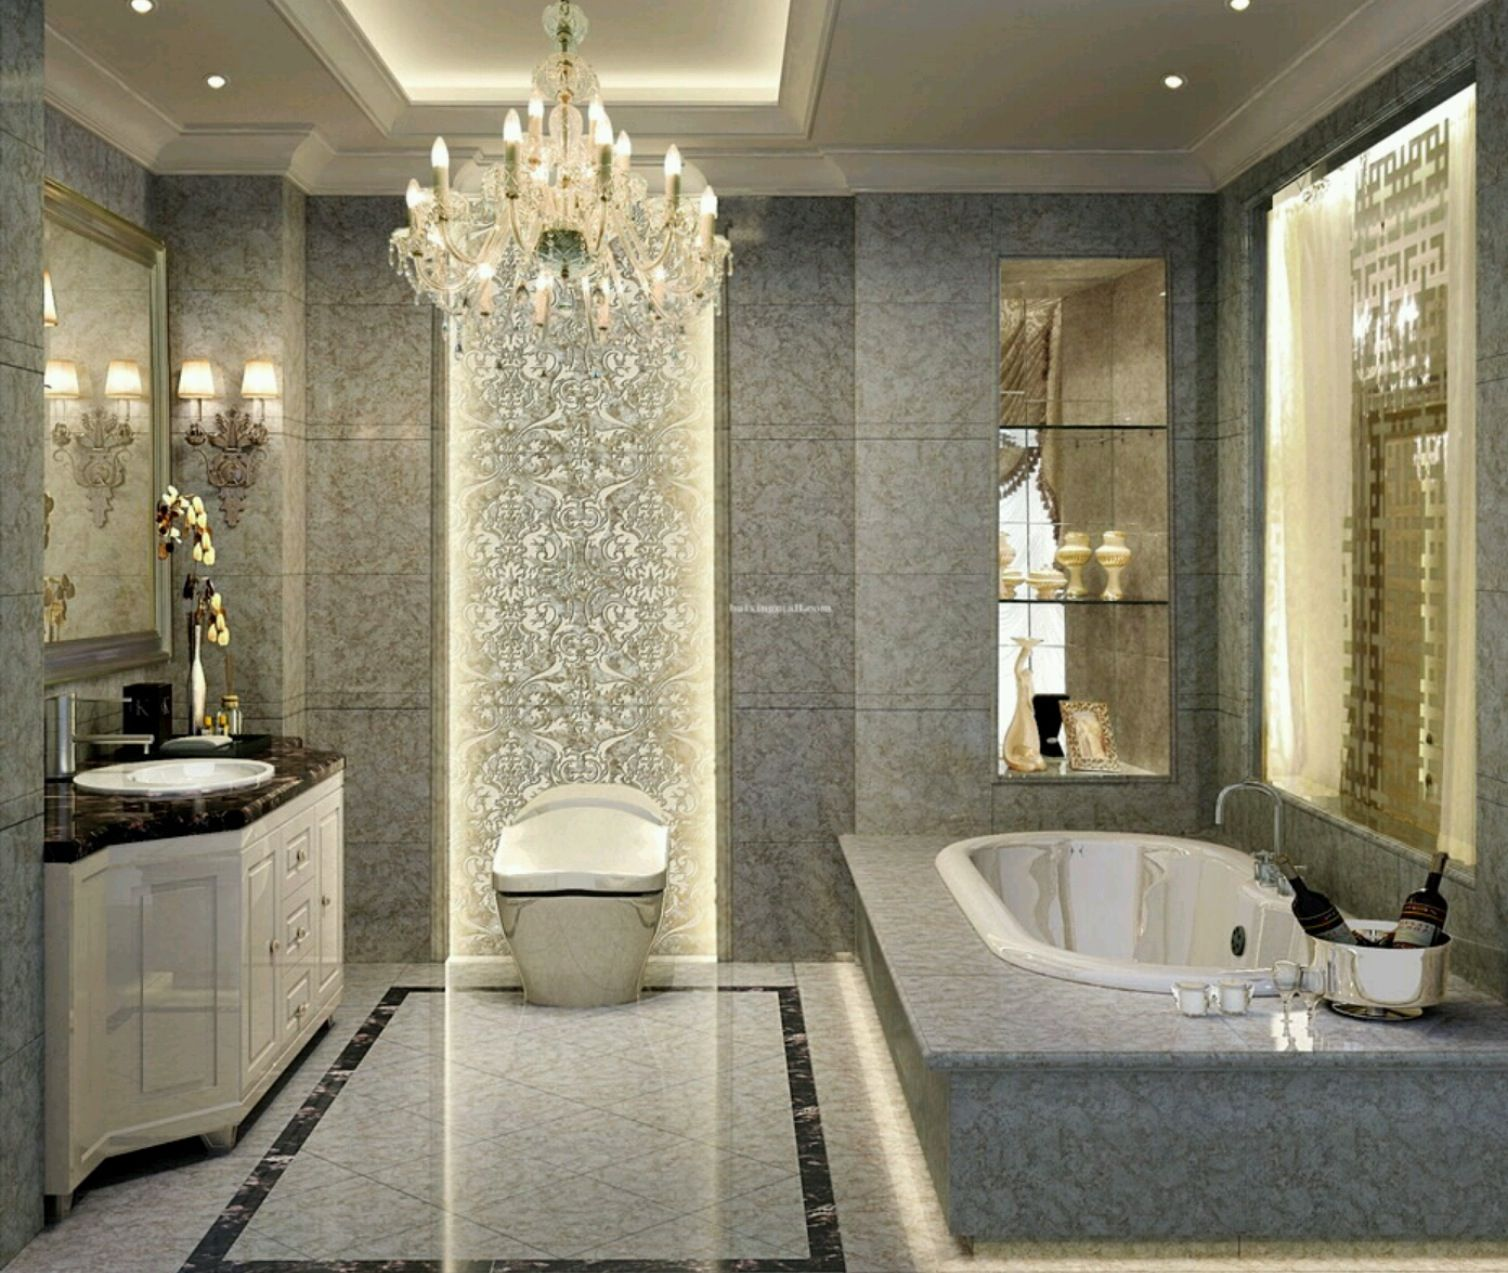 Extreme elegance and style luxury bathrooms pinterest